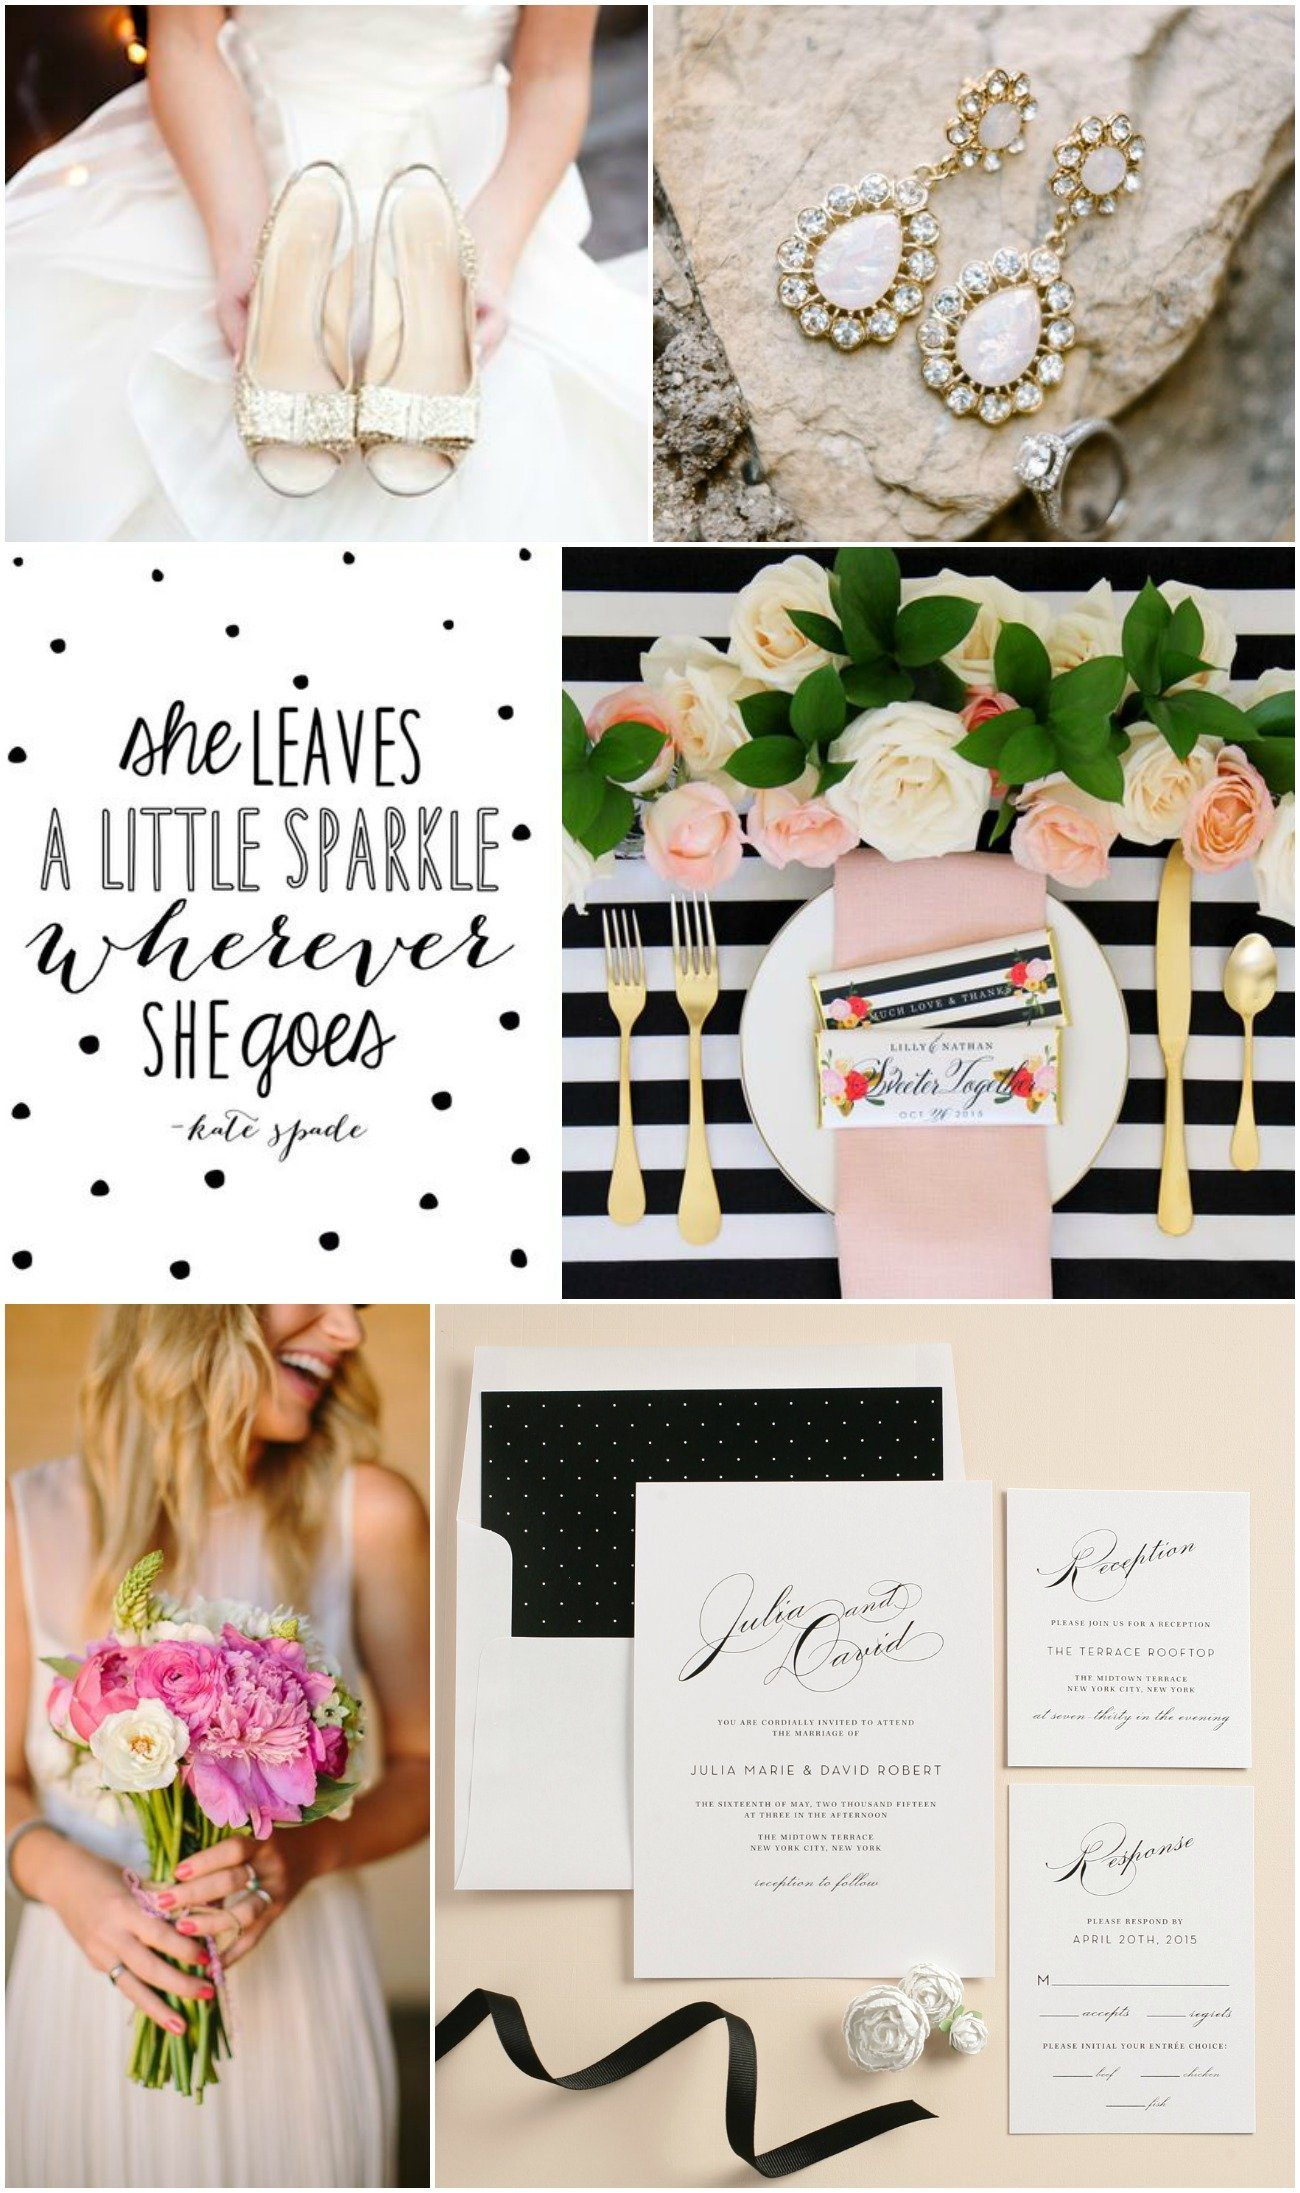 Kate Spade Wedding Inspiration - from Shine Wedding Invitations